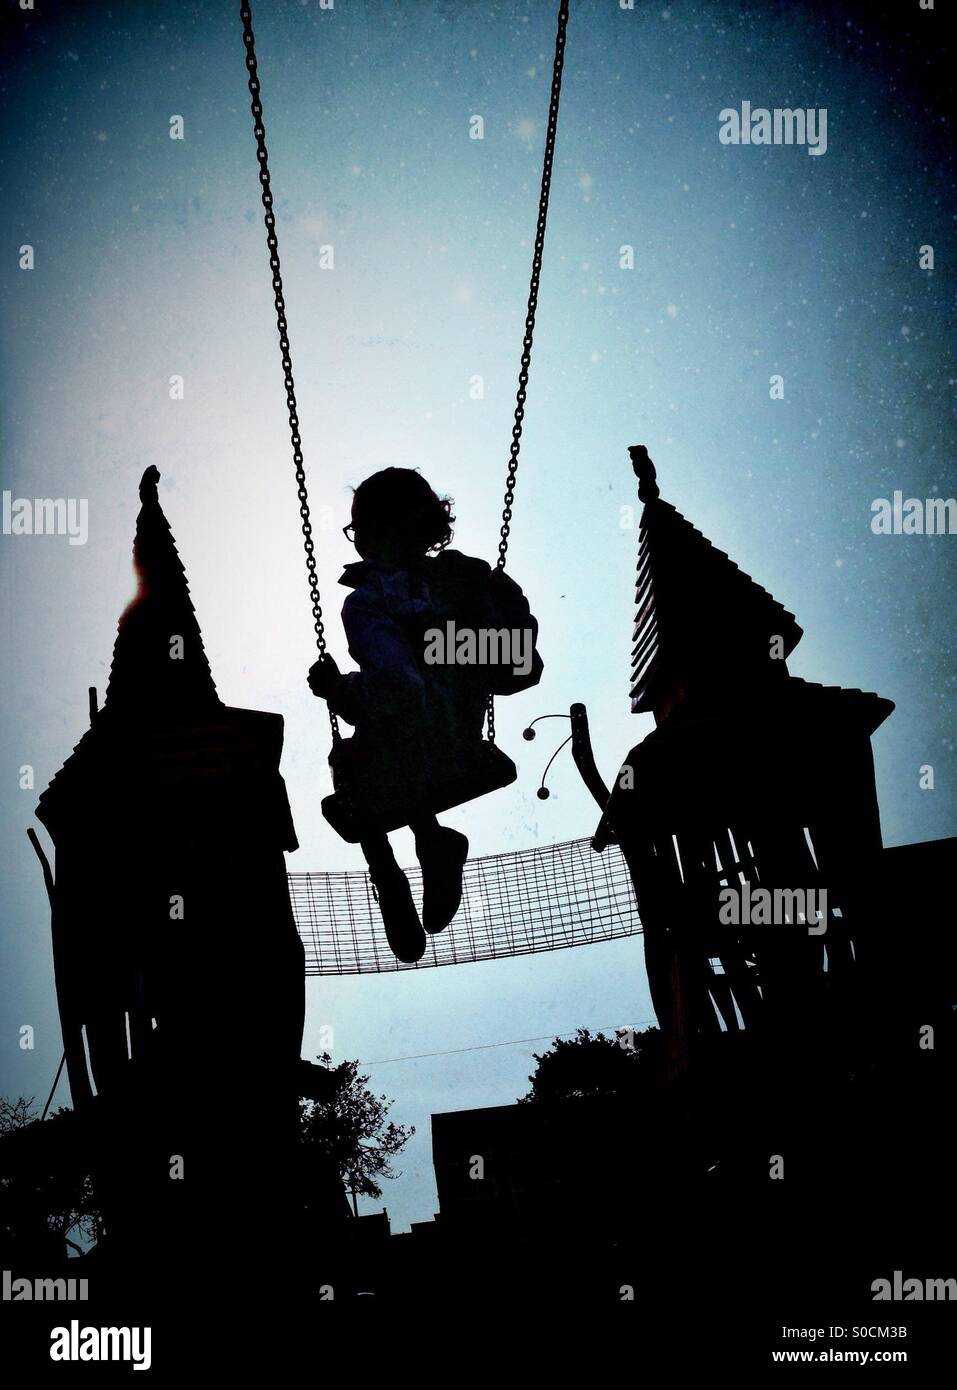 Young girl on swing in silhouette with fairytale castle in background. With dusk atmosphere and starry sky - Stock Image